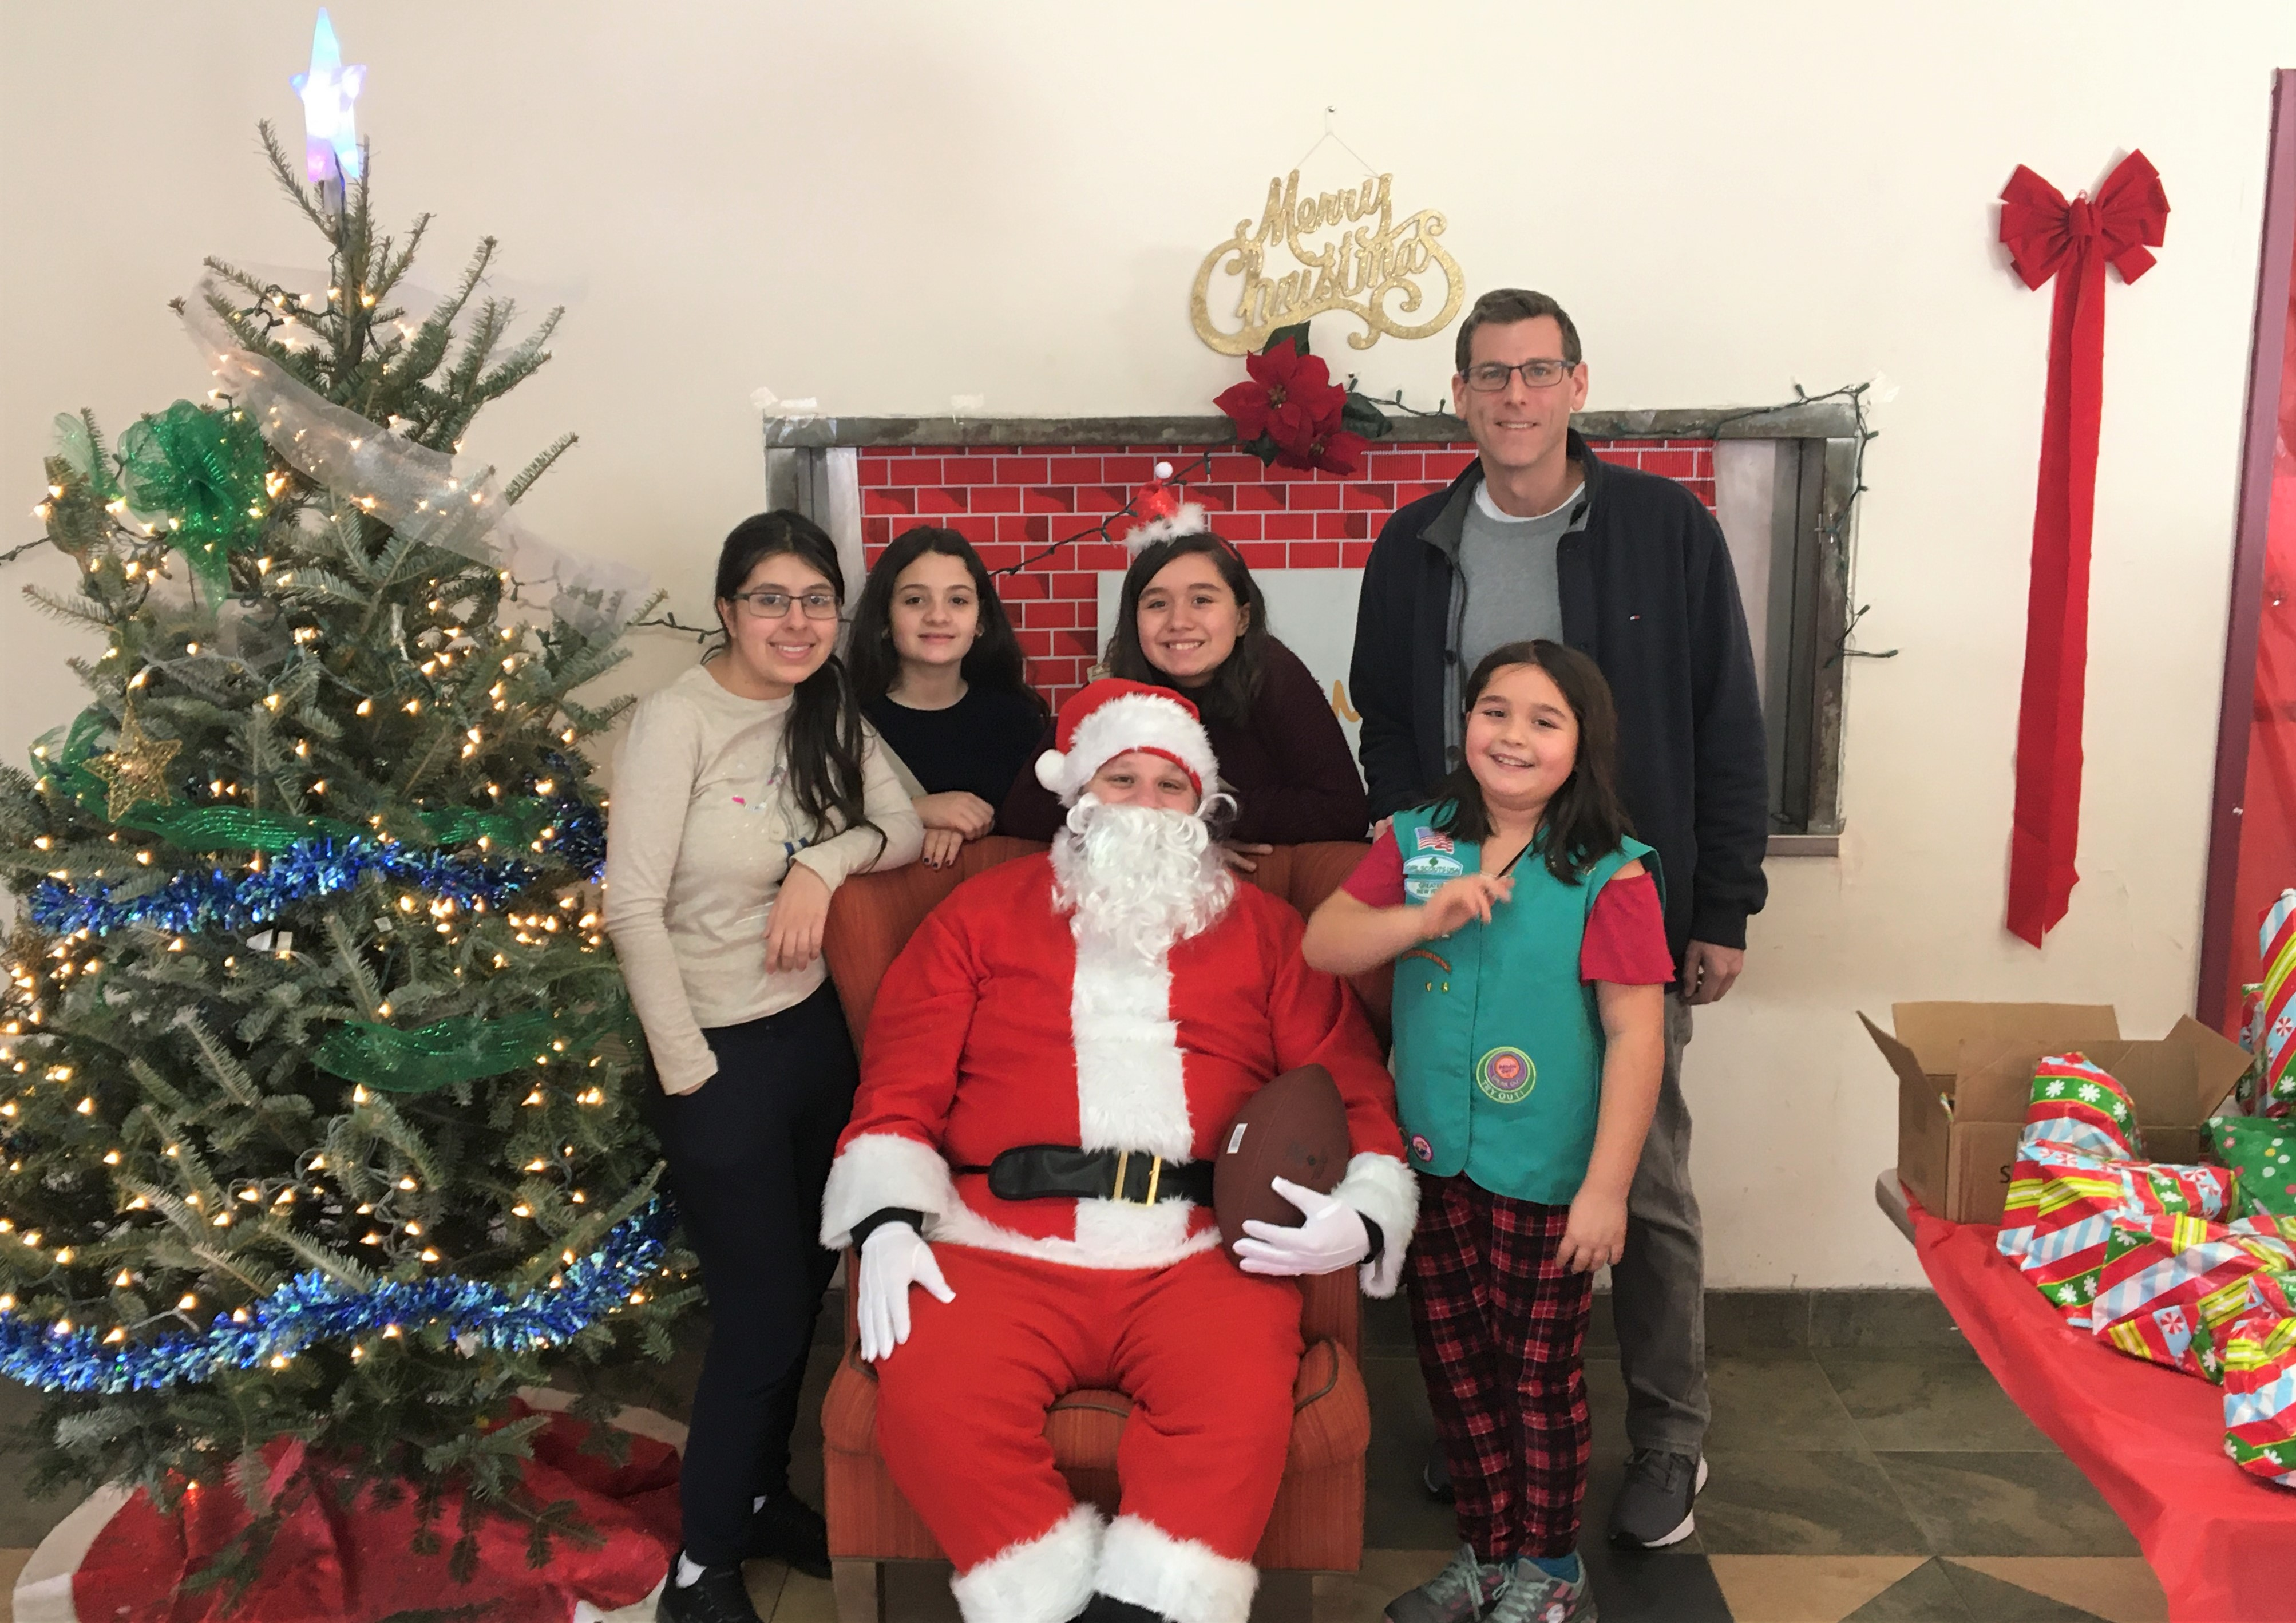 On December 22, 2019, Assemblyman Braunstein joined Santa and members of Girl Scout Troops 4076 and 4102 at the Belt Park Family Shelter.